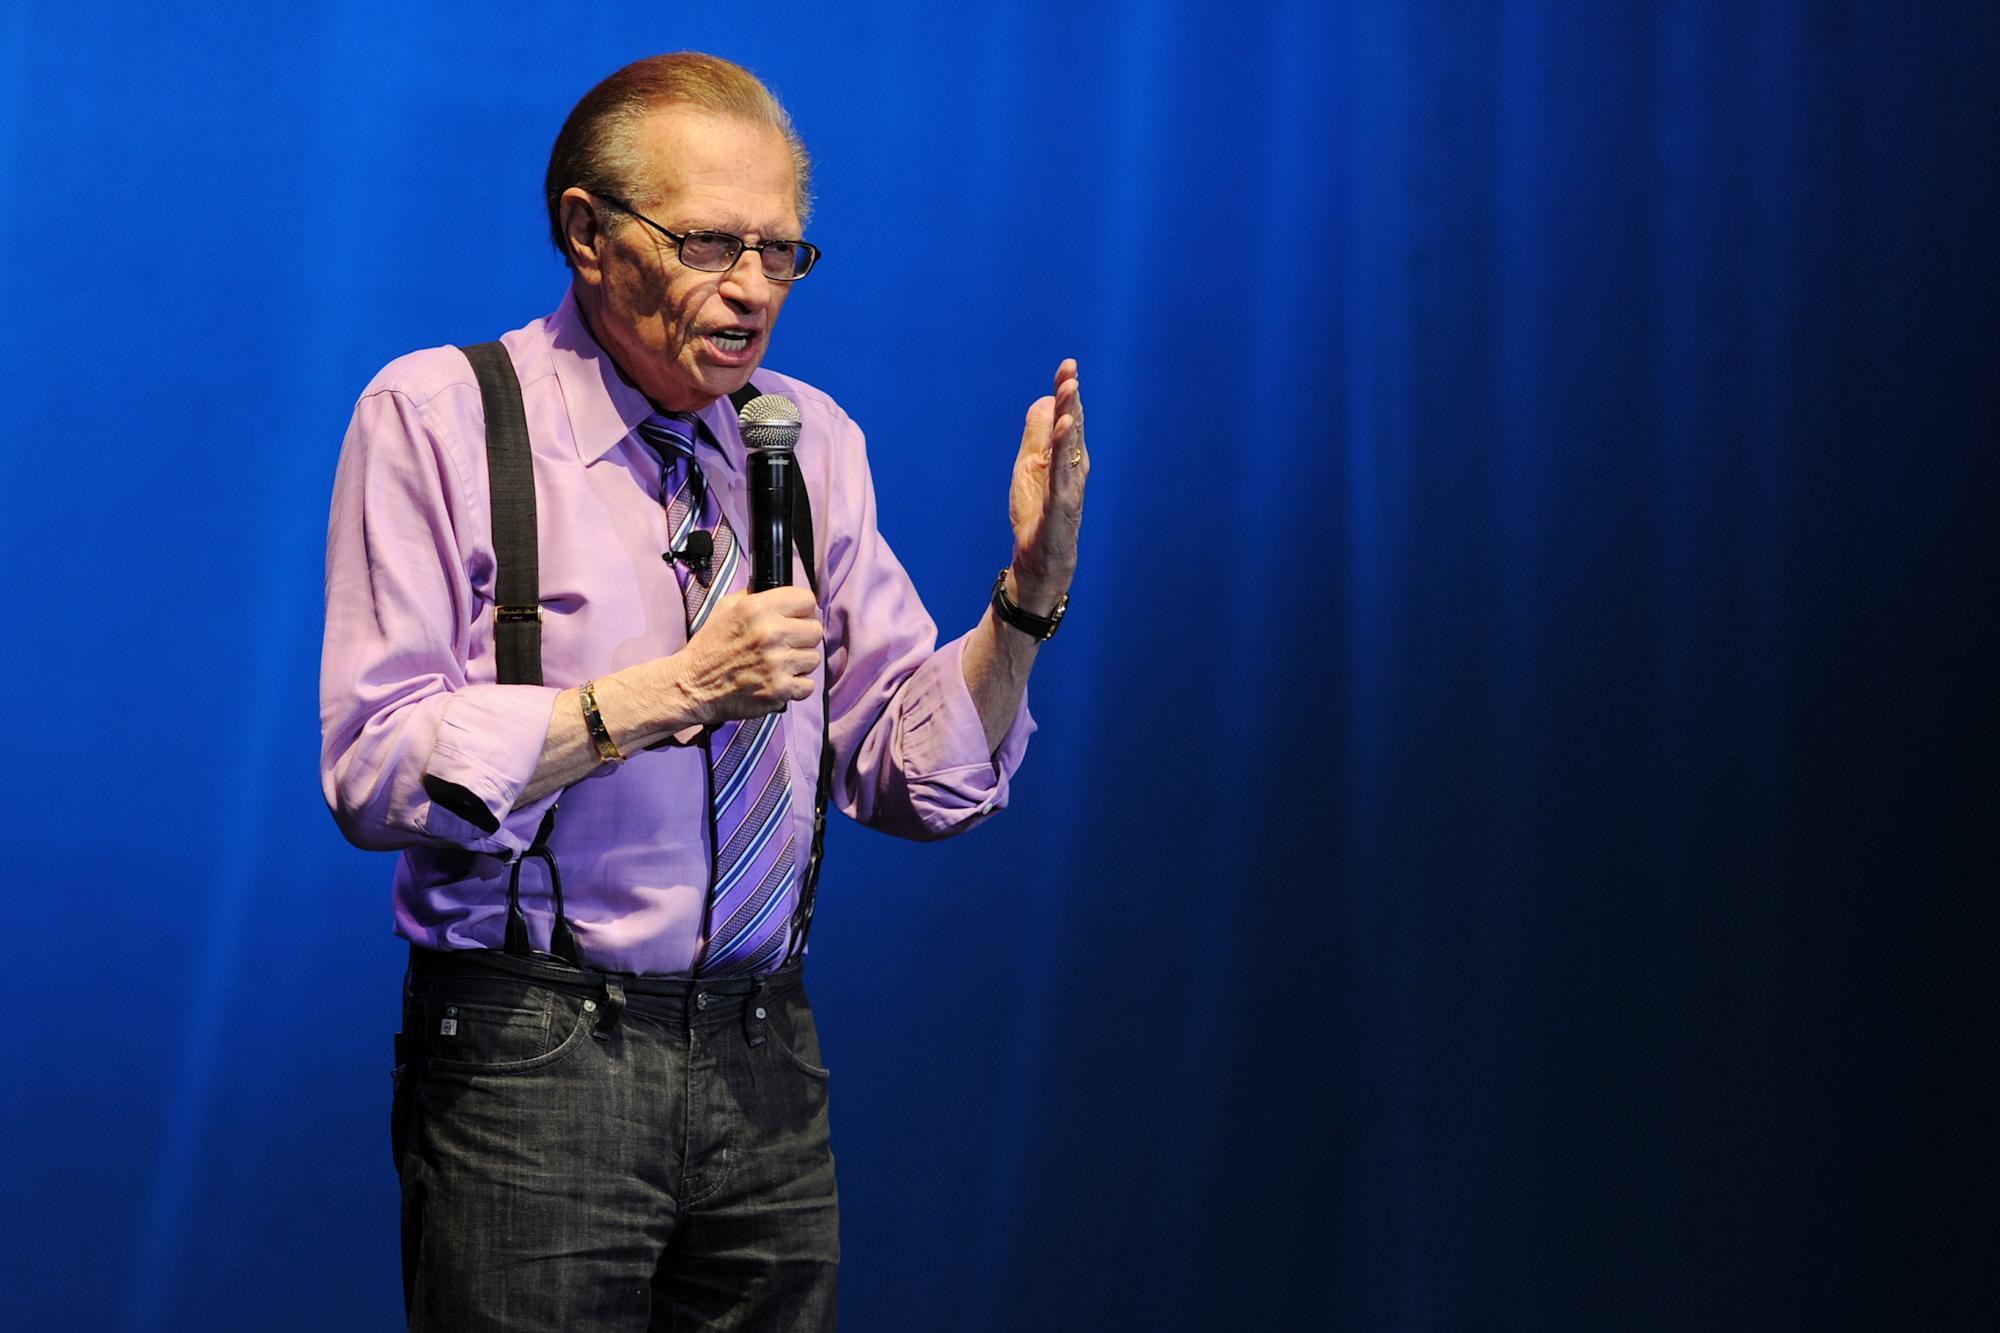 Larry King, broadcasting legend, remembered by Hollywood as an 'American treasure'